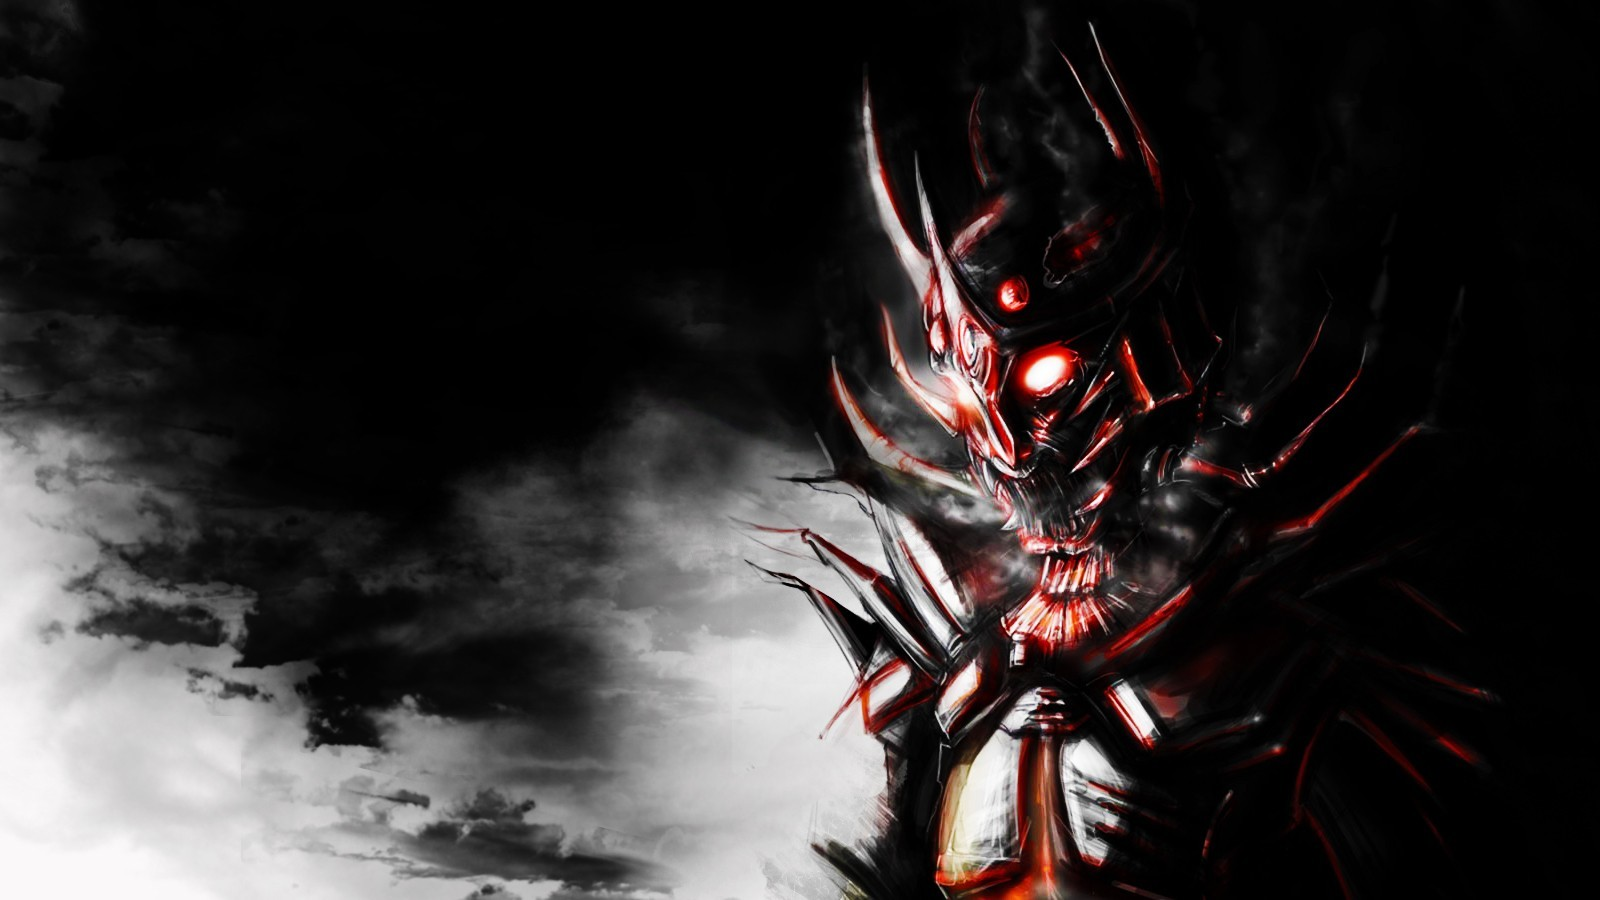 demons samurai armor Demonic HD Wallpaper